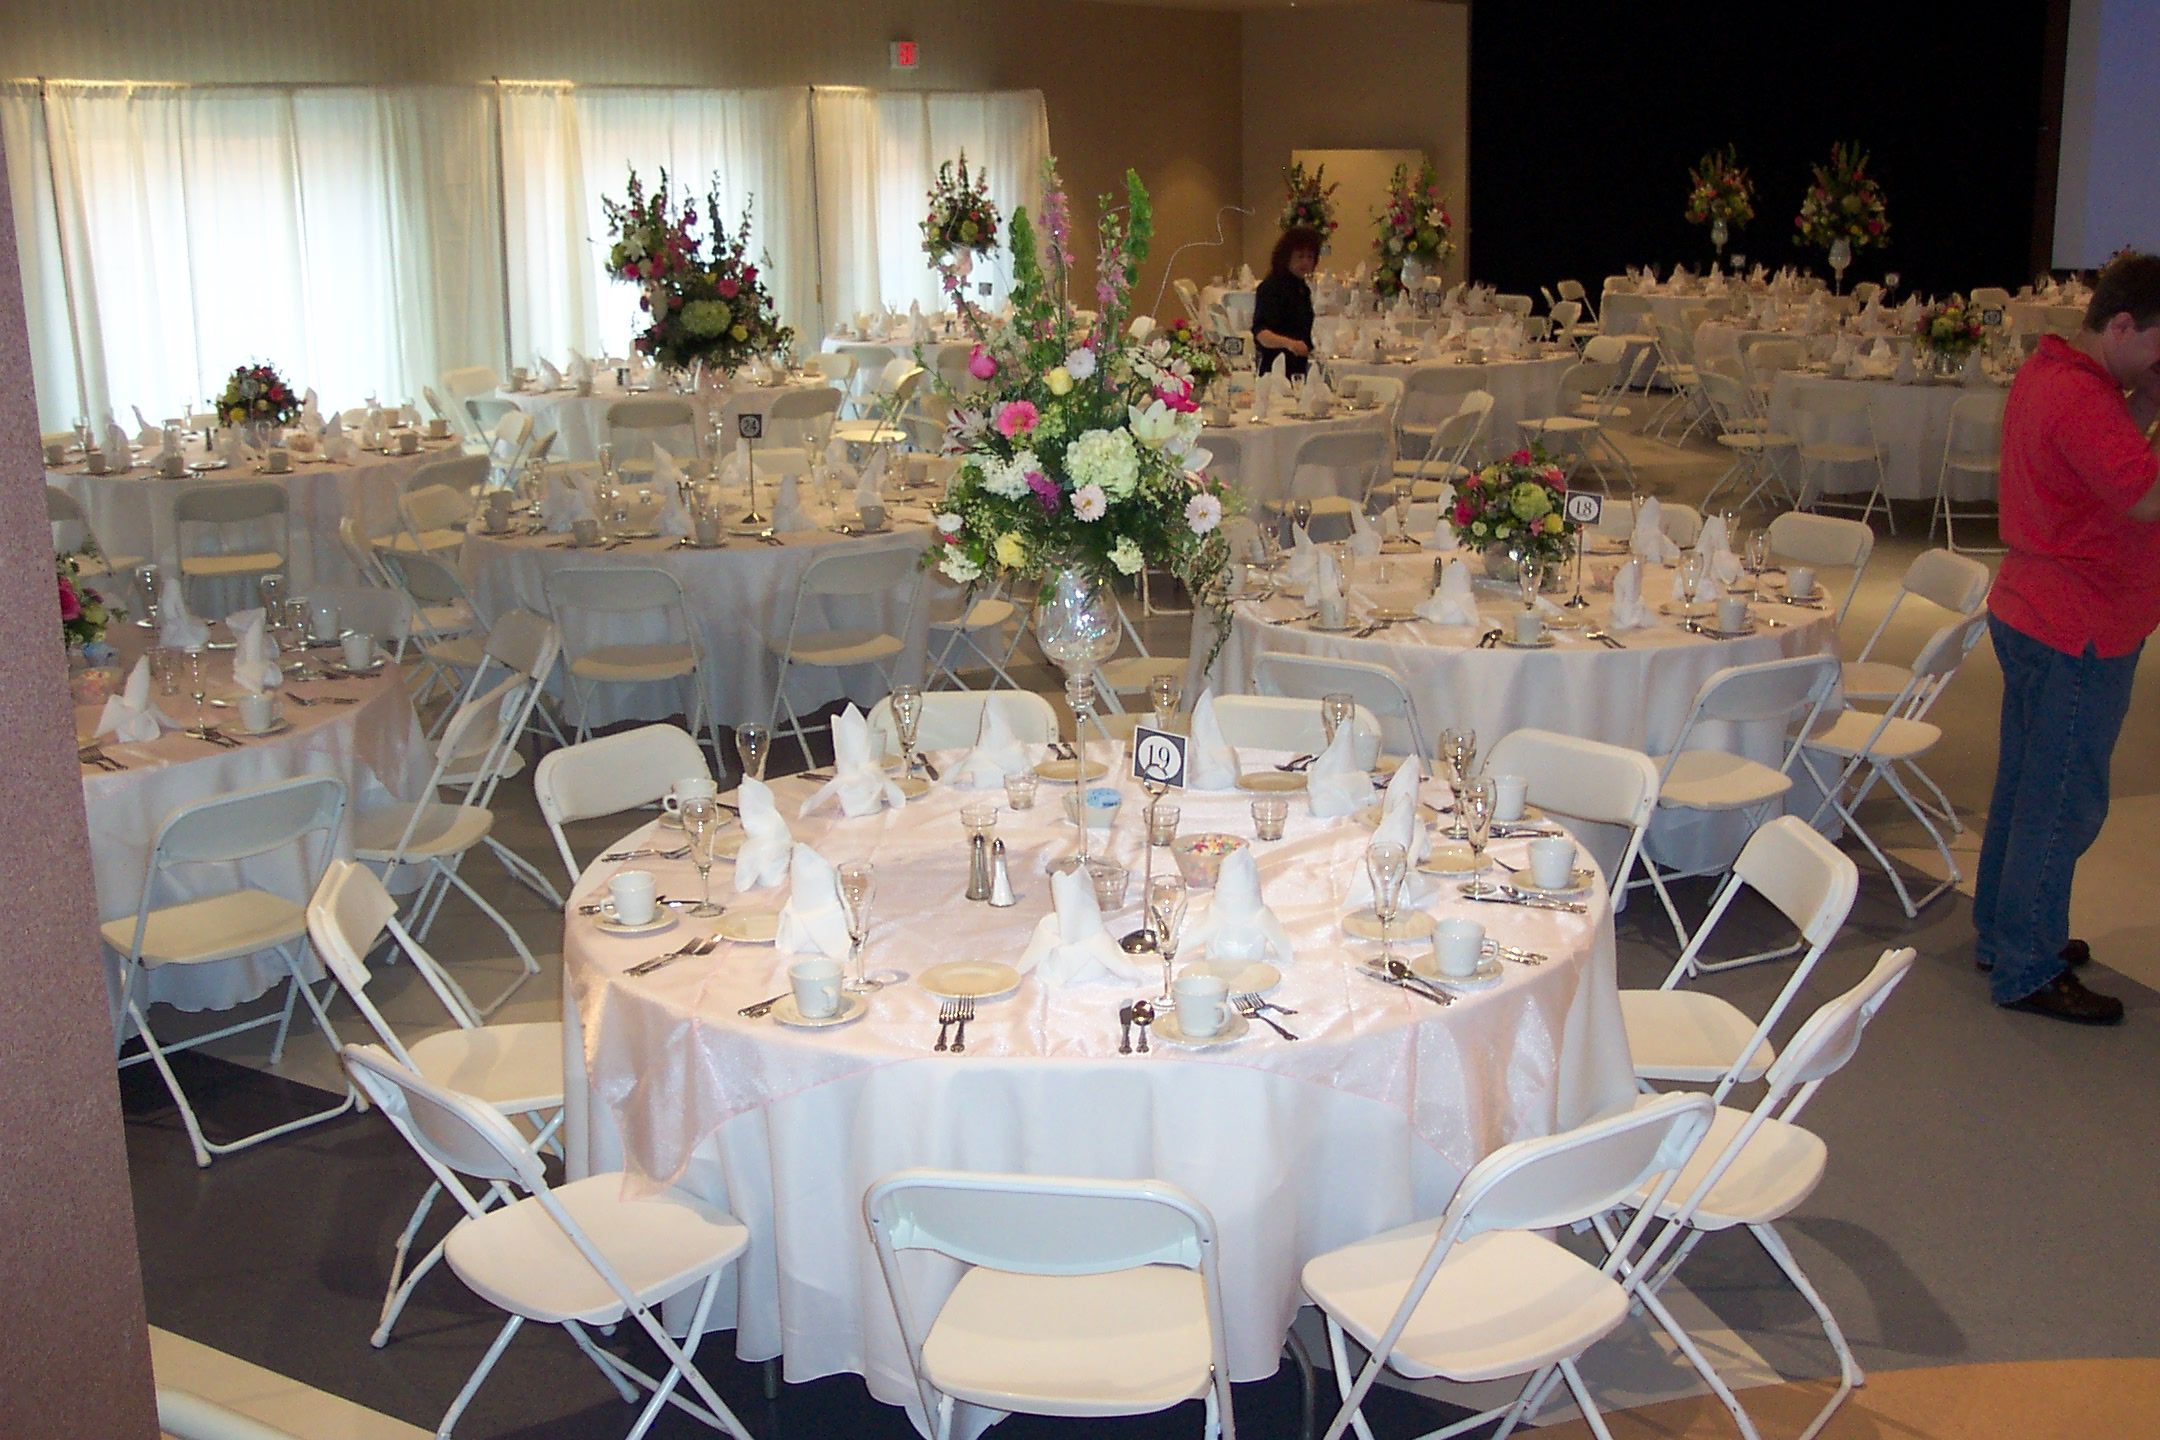 tables set for wedding reception with linens and floral arrangements